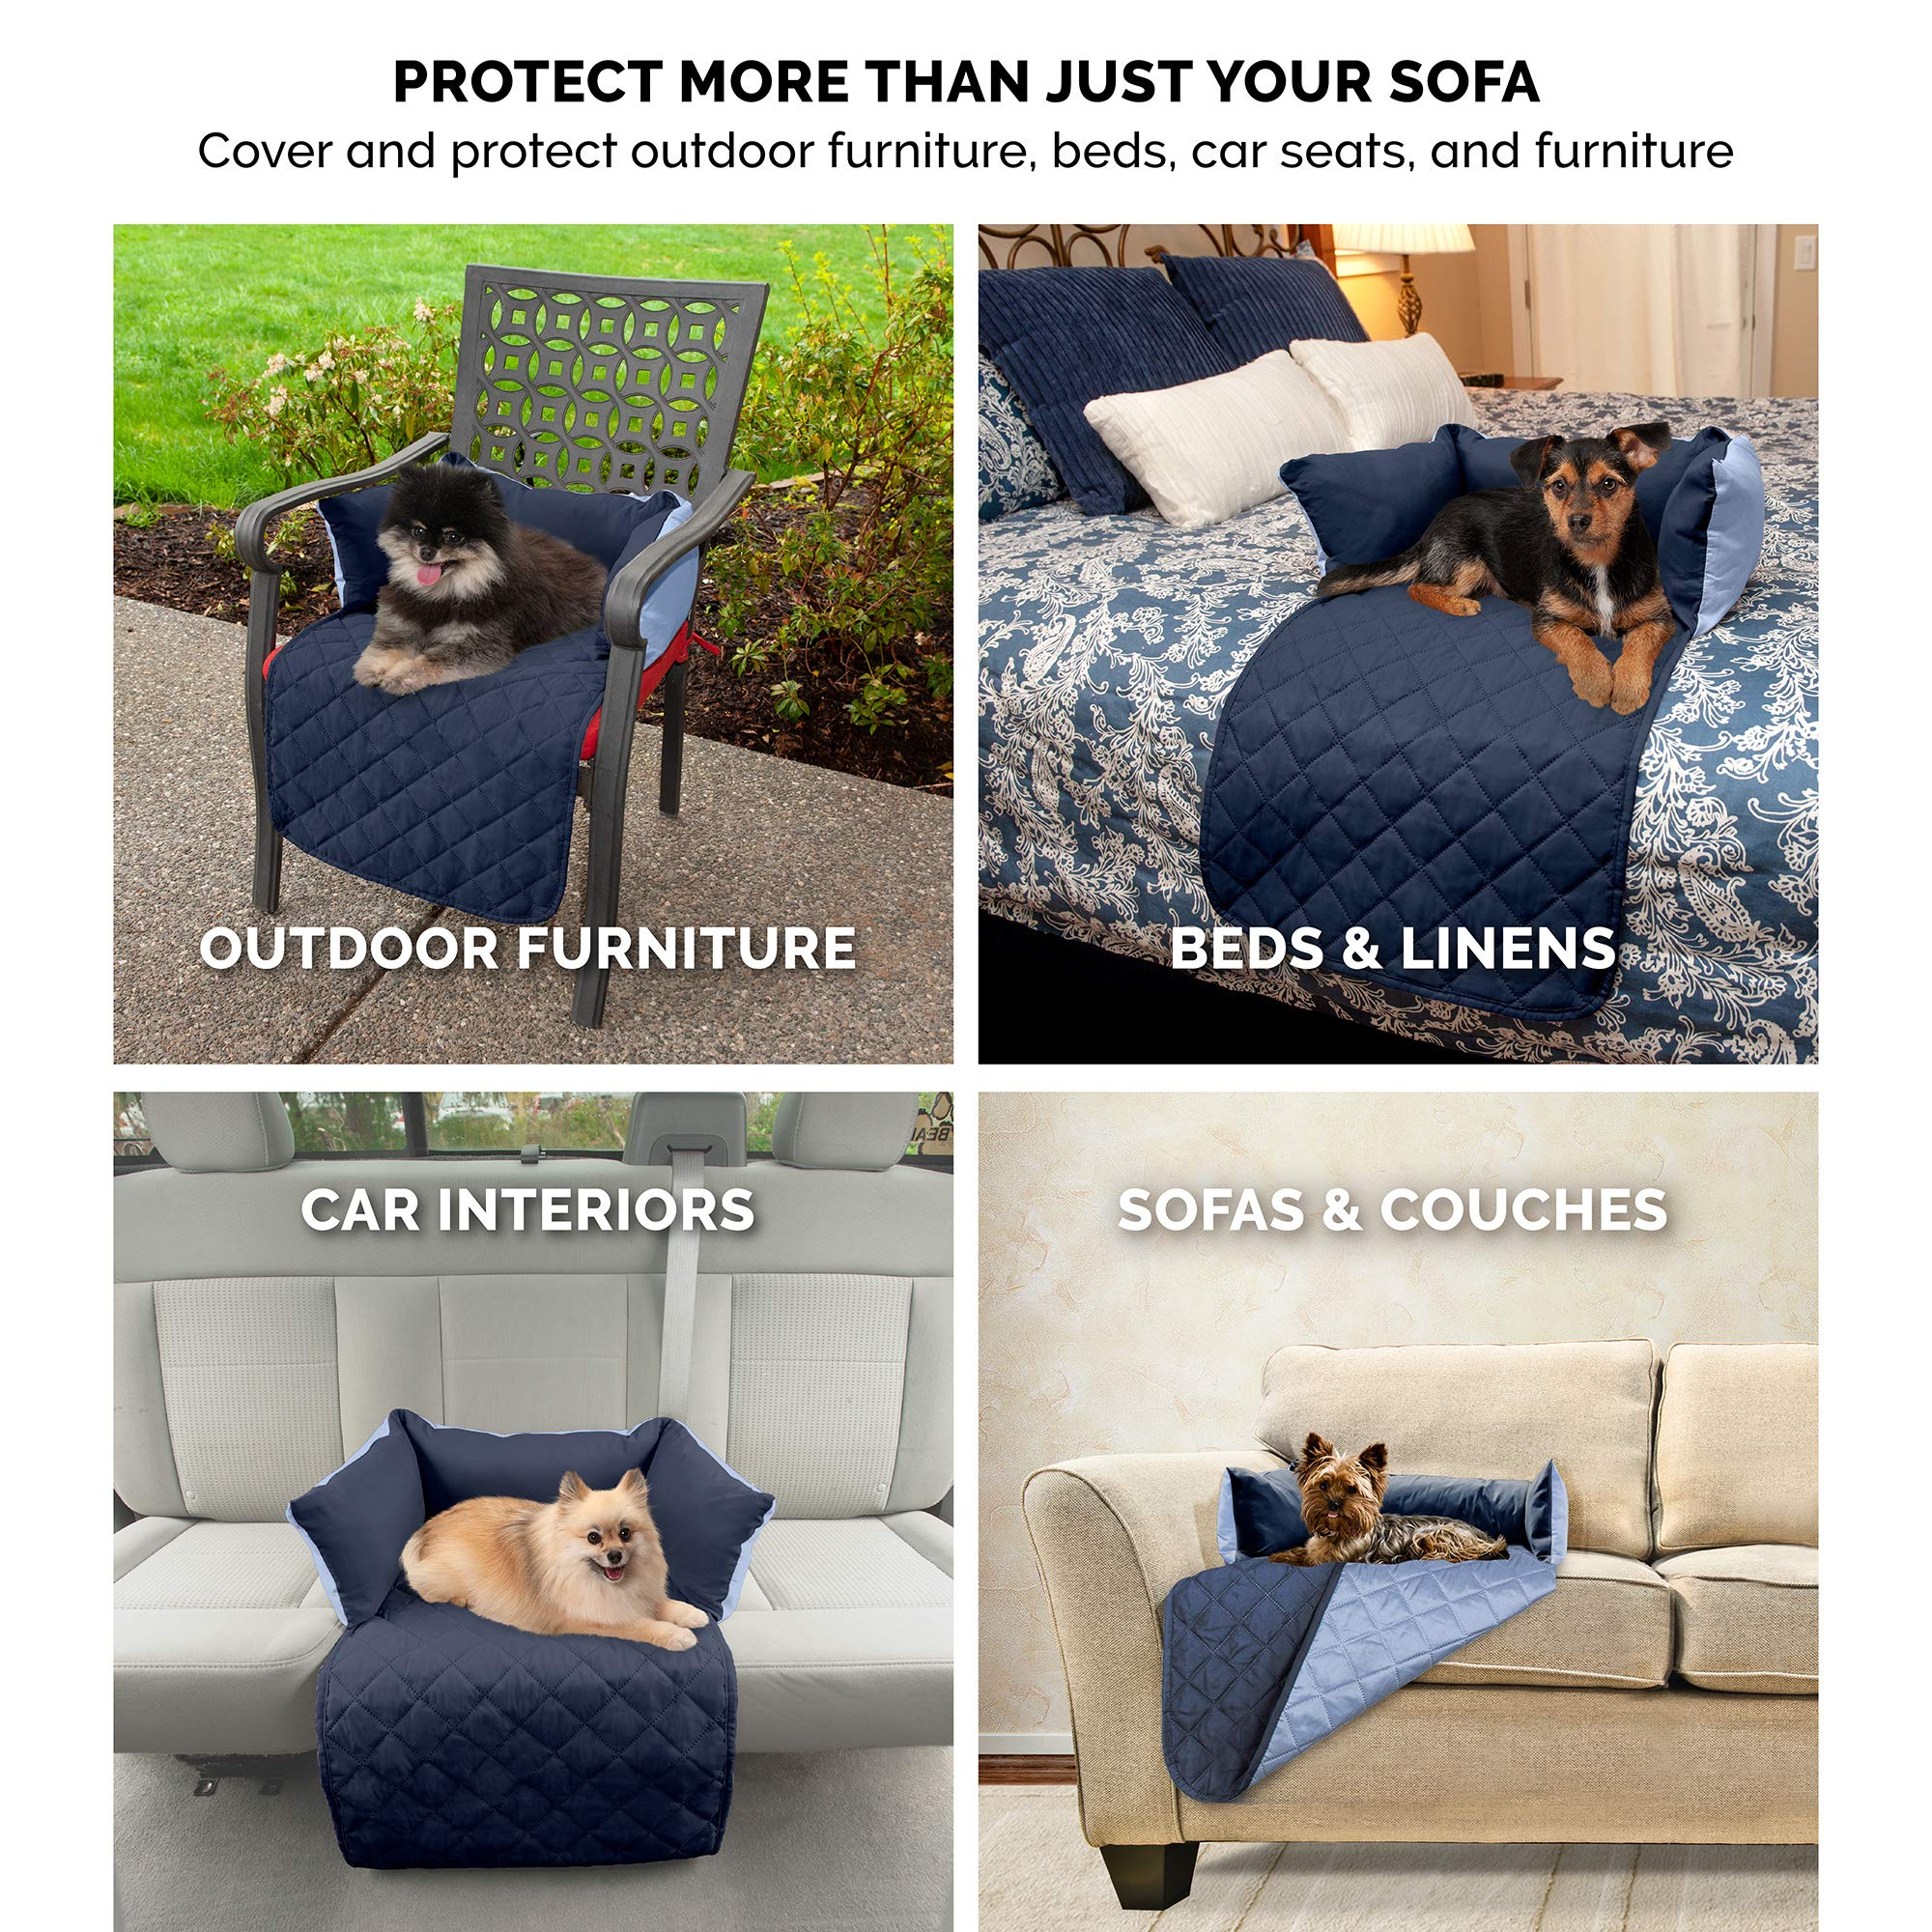 Furhaven Pet Furniture Cover | Sofa Buddy Two-Tone Reversible Water-Resistant Living Room Furniture Cover Protector Pet Bed for Dogs & Cats, Navy/Light Blue, Large